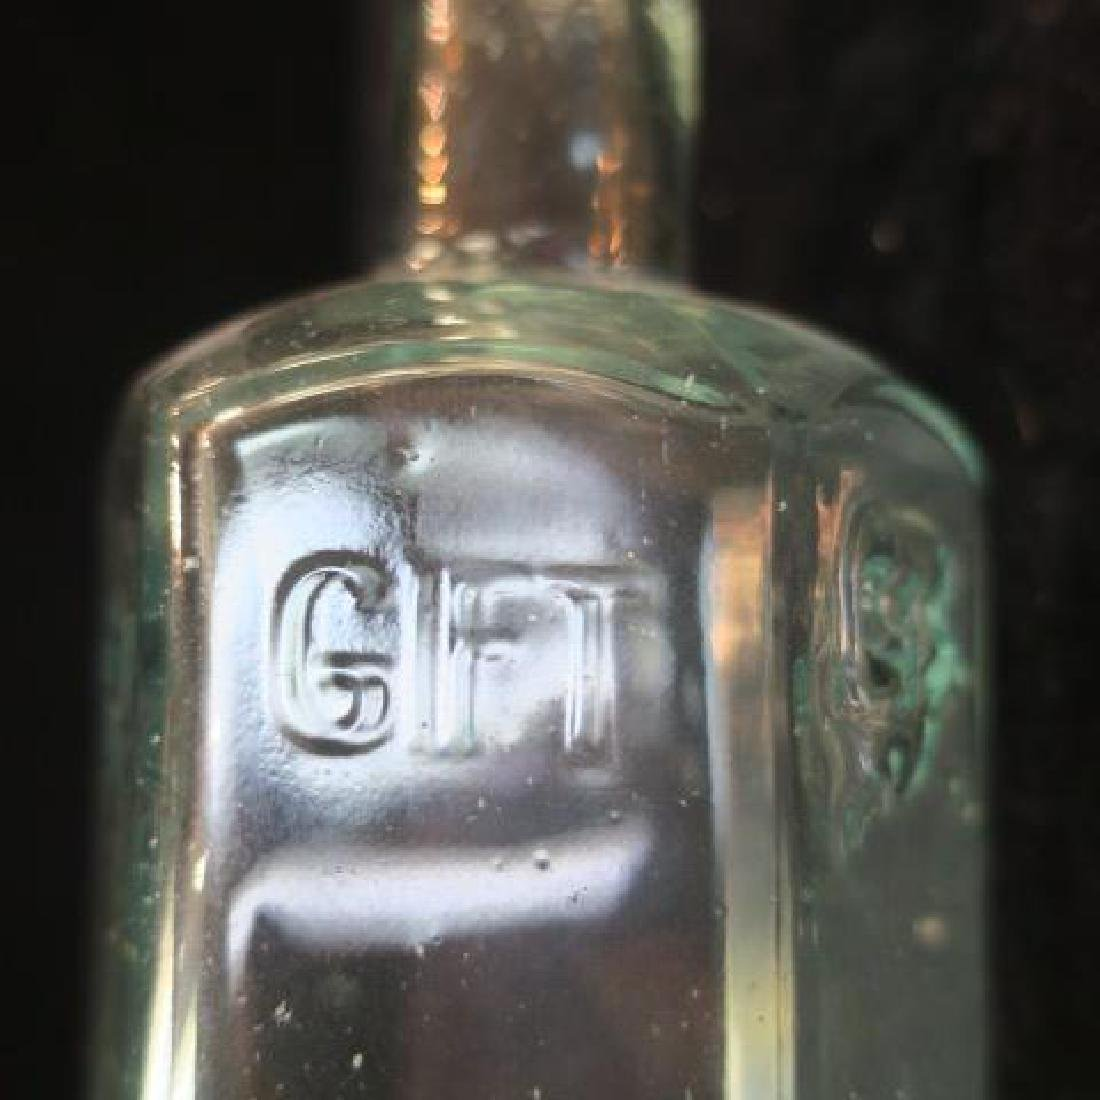 German Poison Bottle with GIFT and Skull & Crossbones: - 4